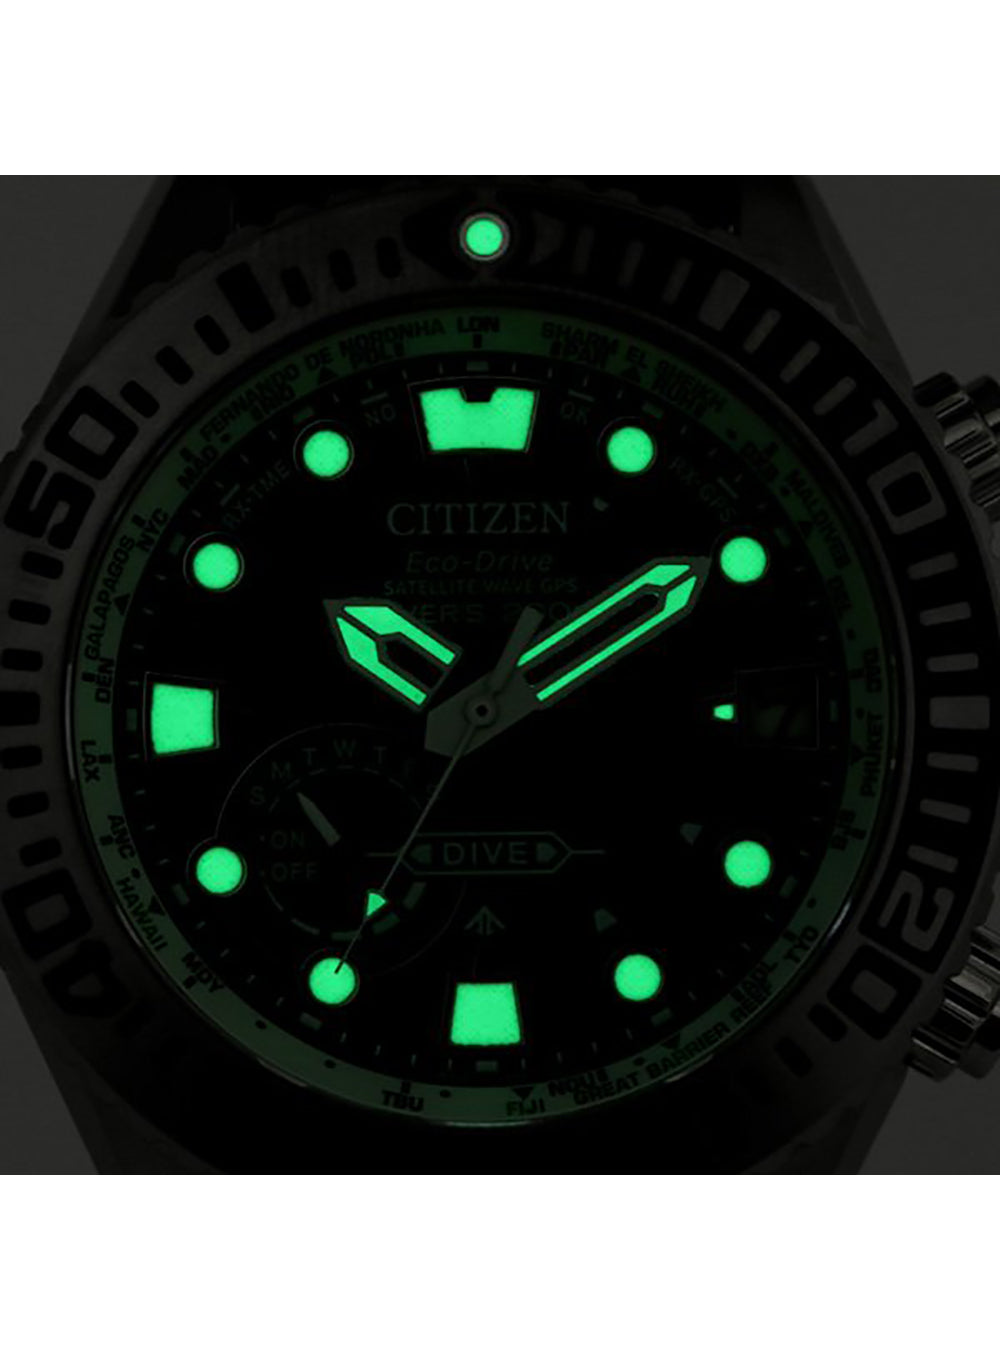 CITIZEN PROMASTER ECO-DRIVE SATELLITE WAVE GPS DIVER'S CC5001-00W MADE IN JAPAN JDM